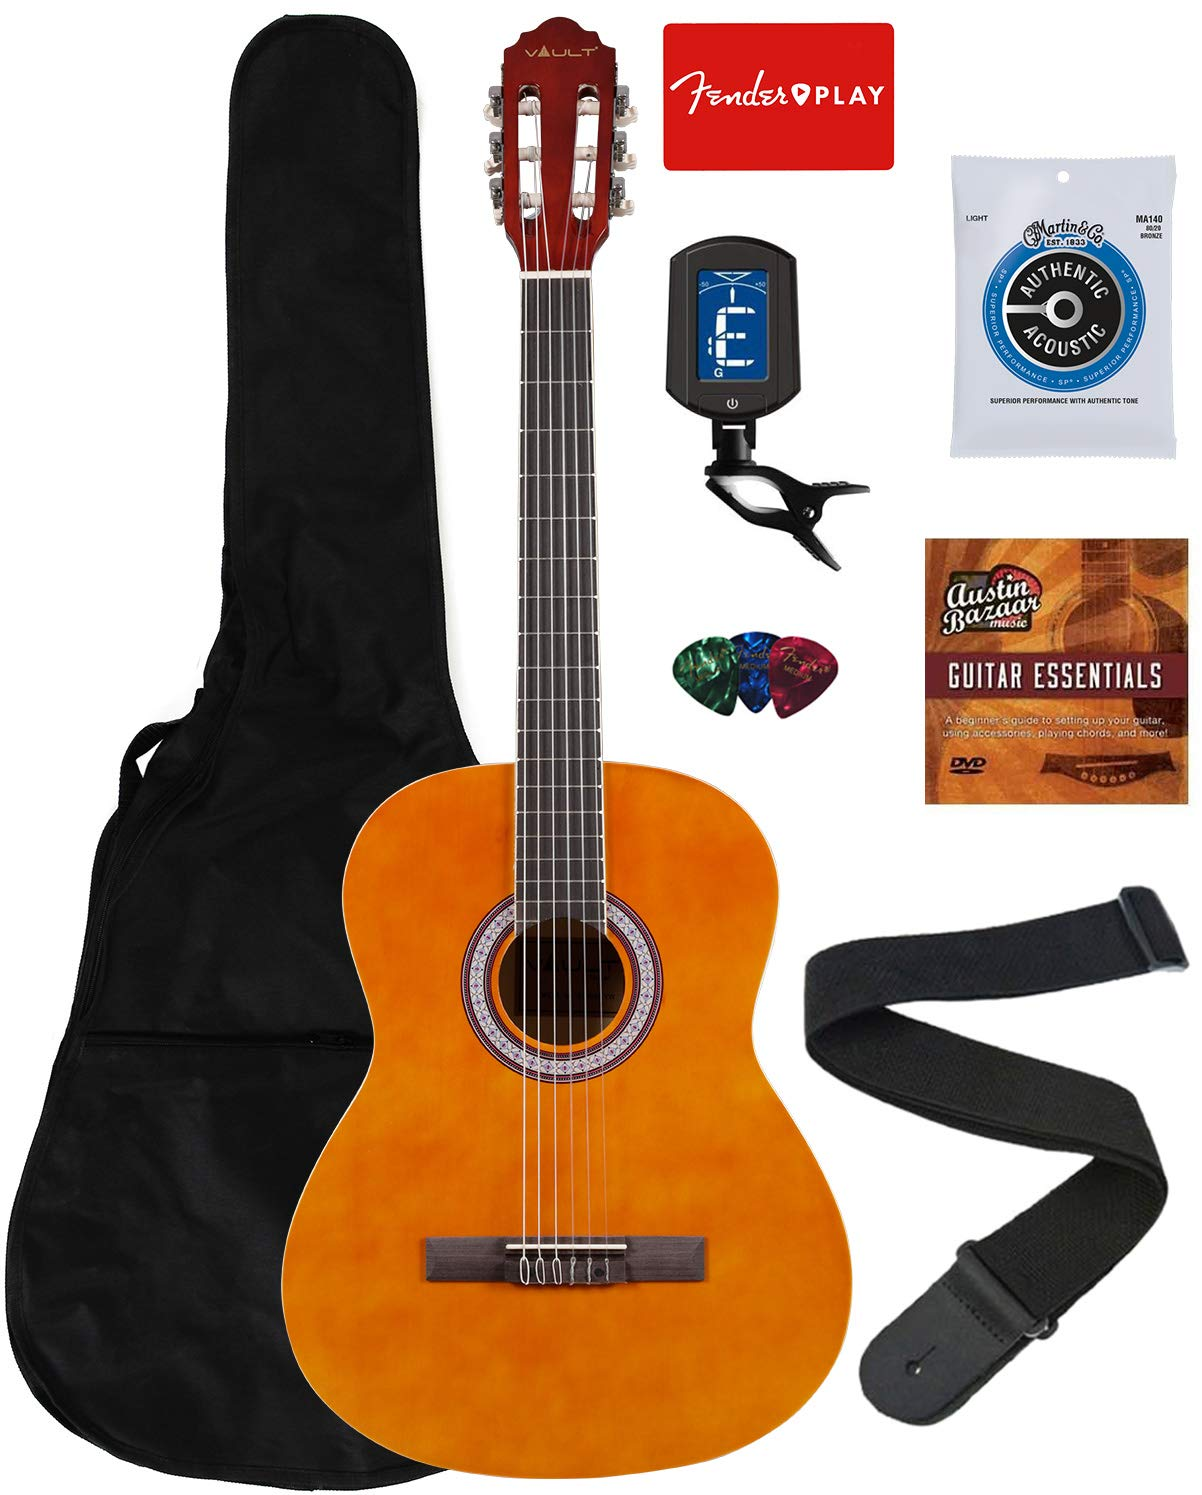 Vault 39-Inch Classical Guitar - Natural Bundle with Gig Bag, Tuner, String, Picks, Strap, Fender Play Online Lessons, and Austin Bazaar Instructional DVD by VAULT